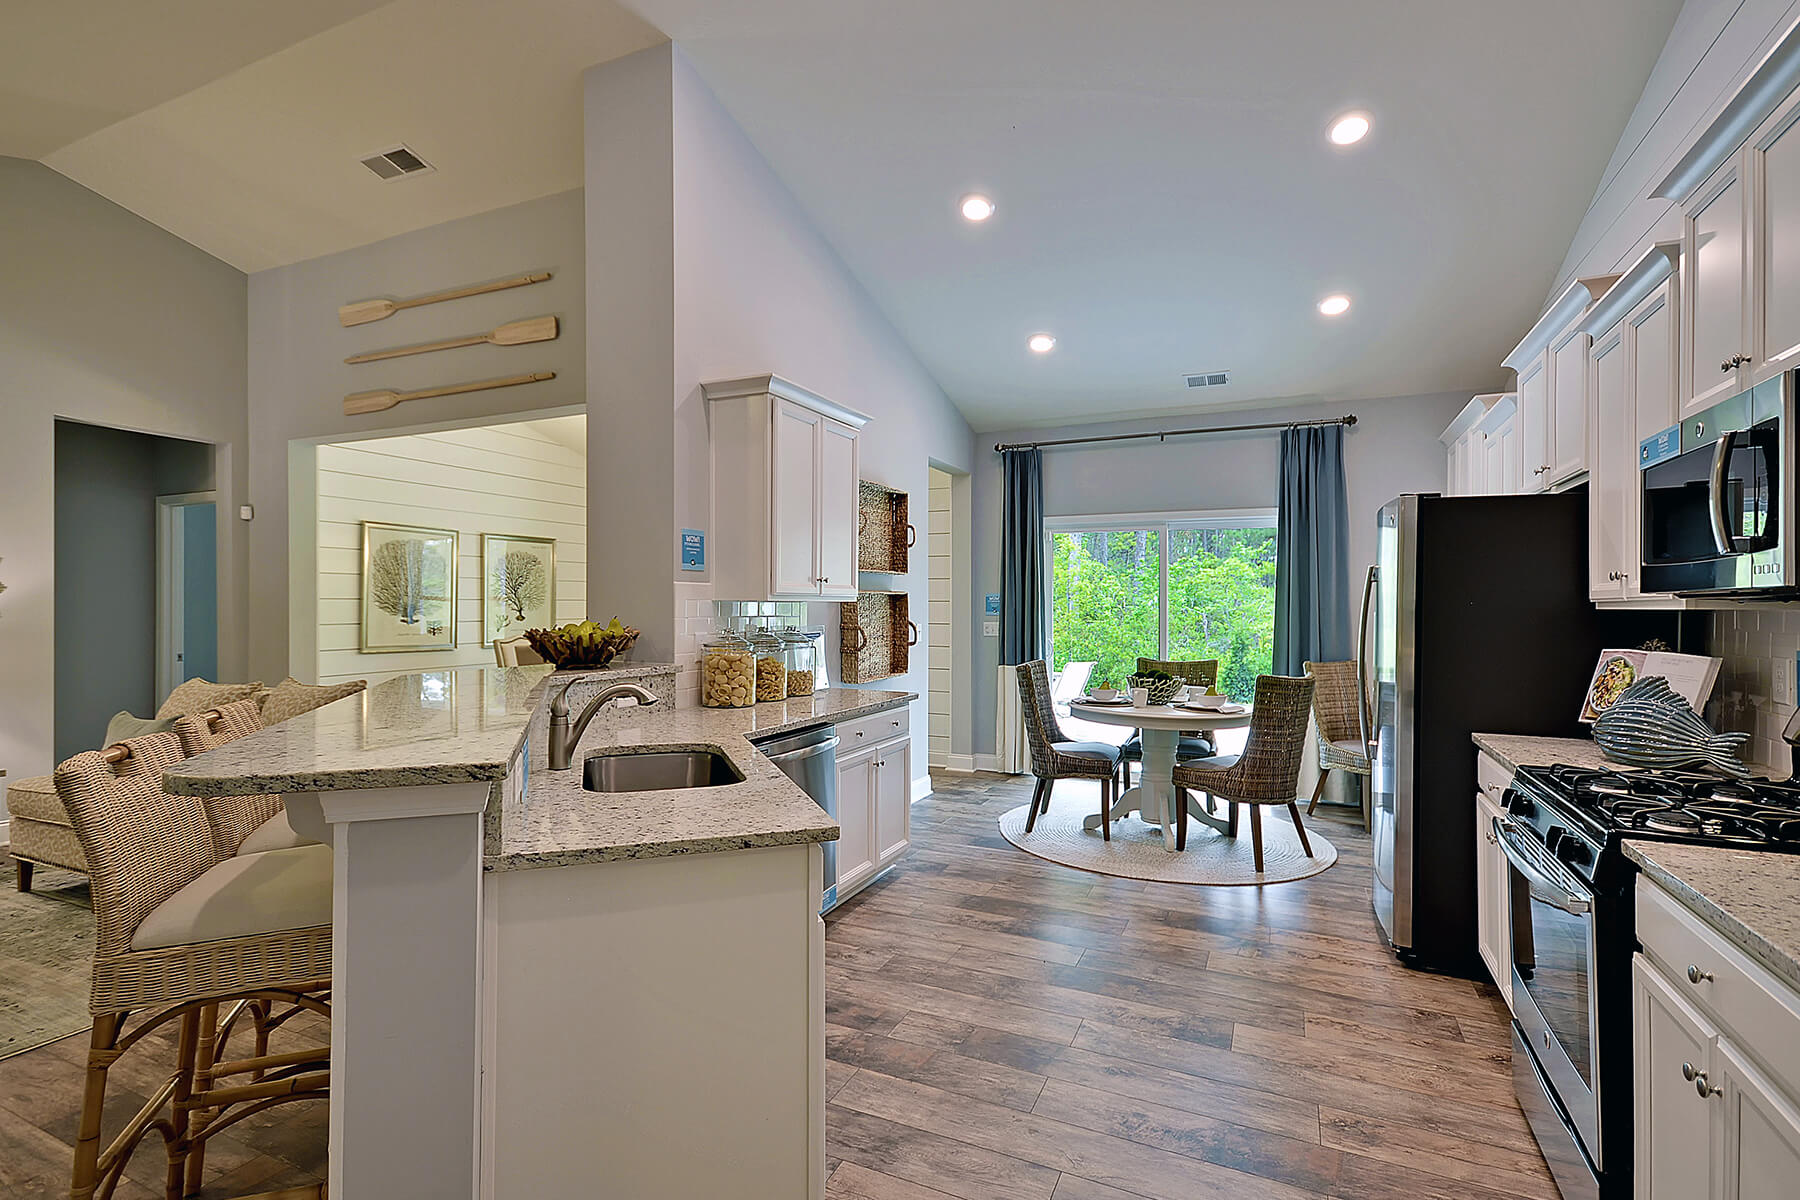 Best Kitchen Gallery: Lennar Introduces The Crepe Myrtle Model At Shearwater Freehold of Lennar Model Homes on rachelxblog.com